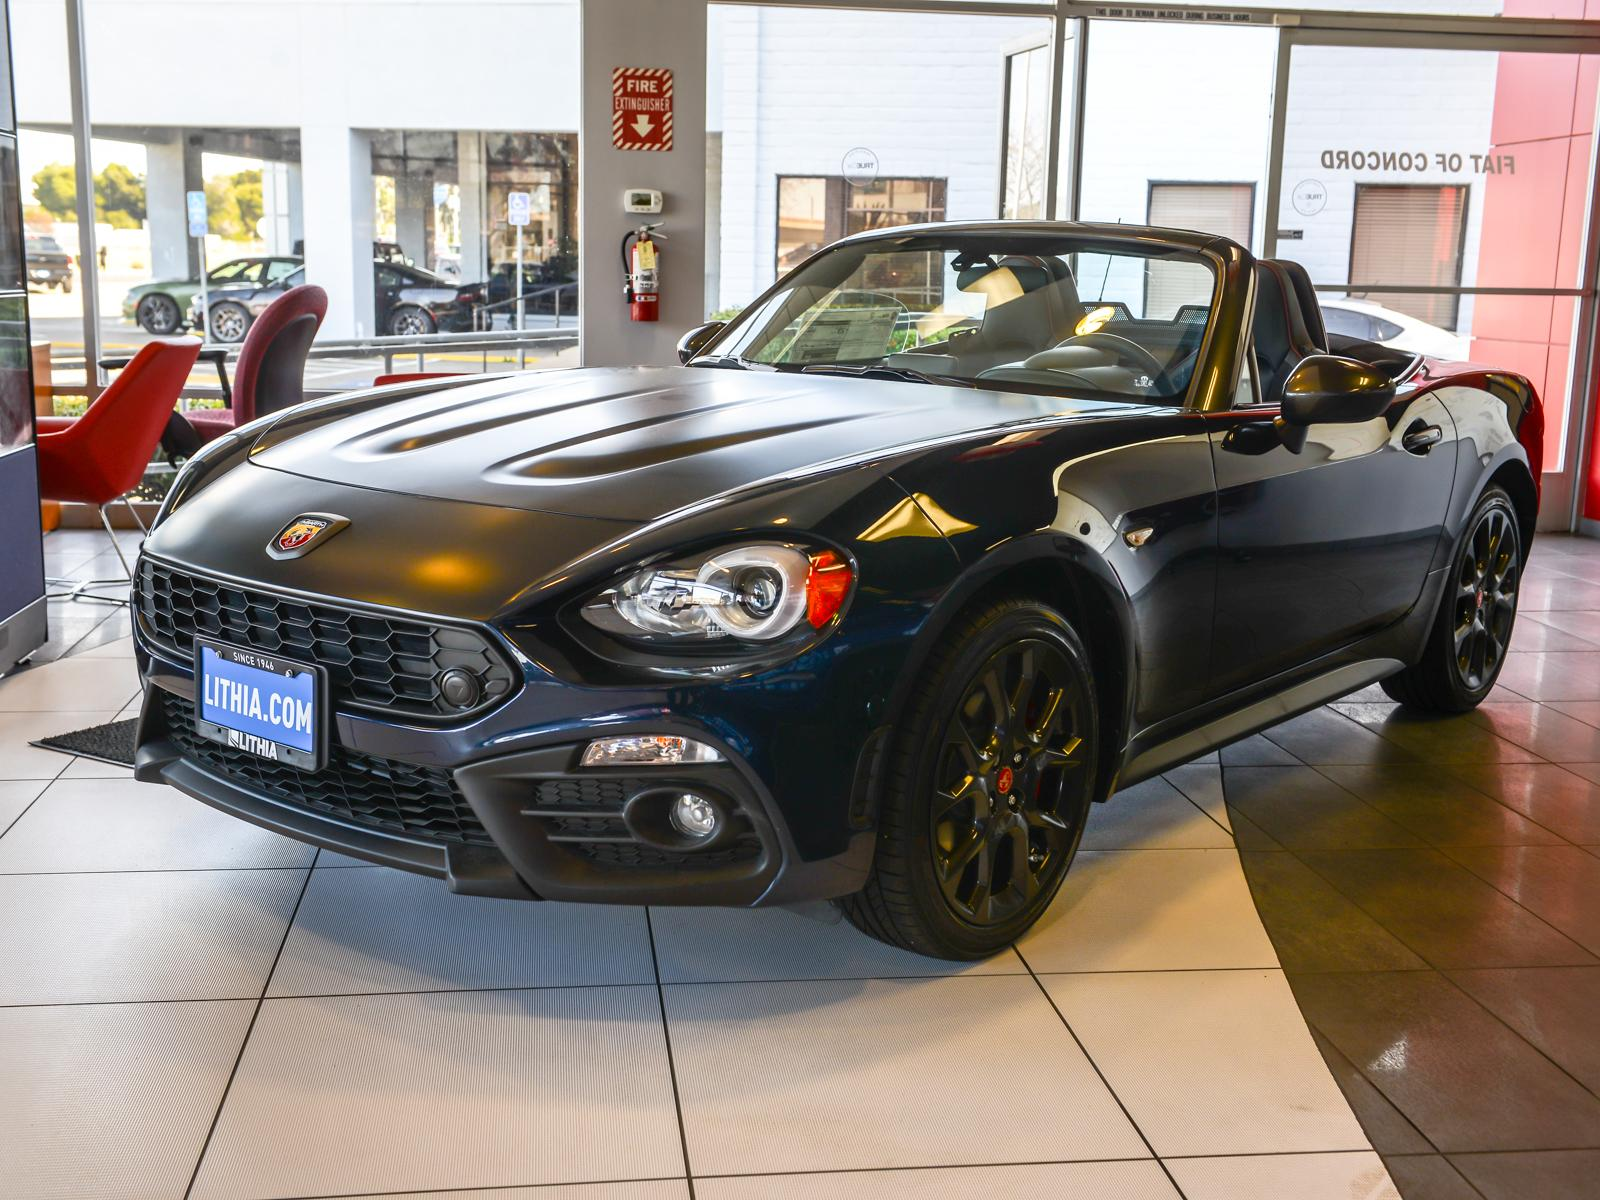 New 2019 FIAT 124 Spider ABARTH Convertible Concord, CA